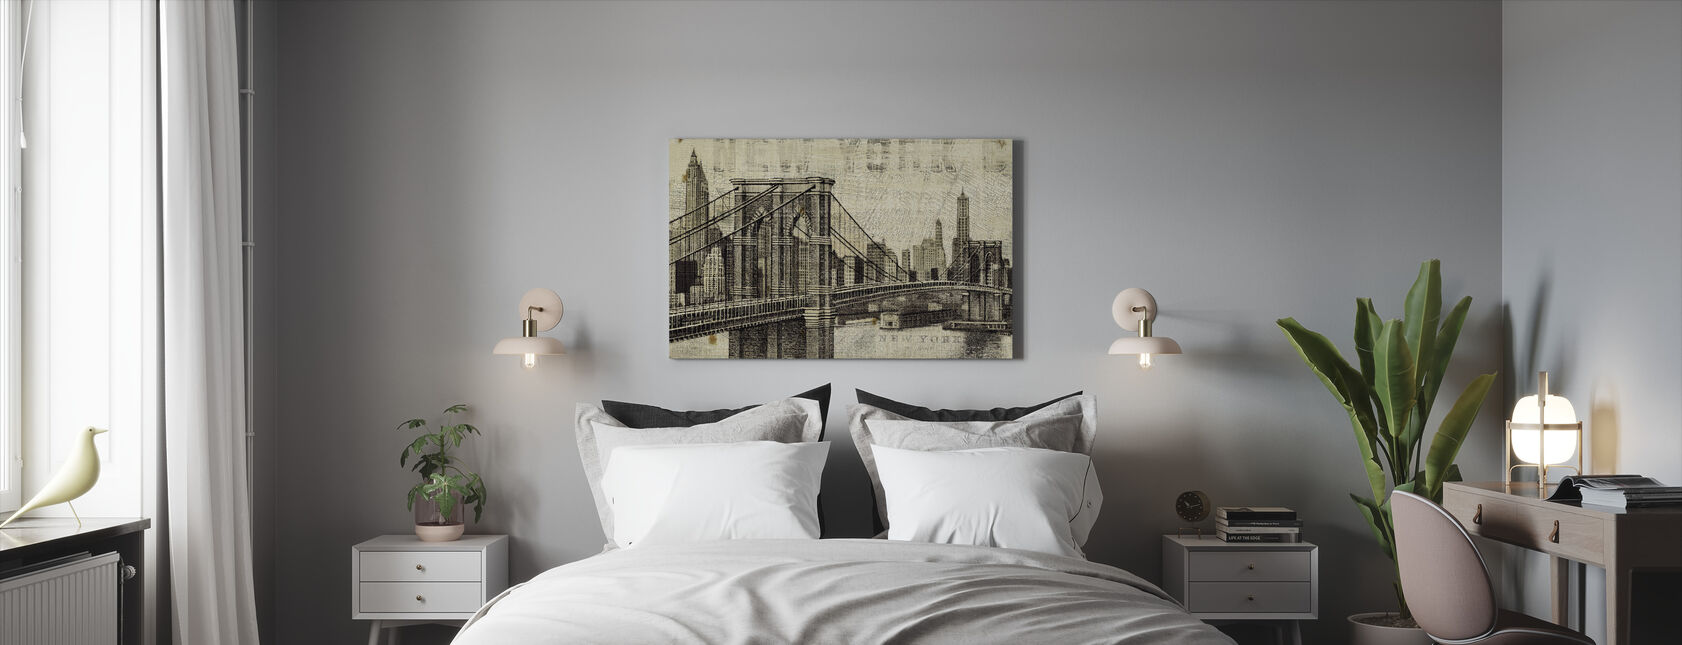 Vintage New York Brooklyn Bridge - Canvas print - Bedroom